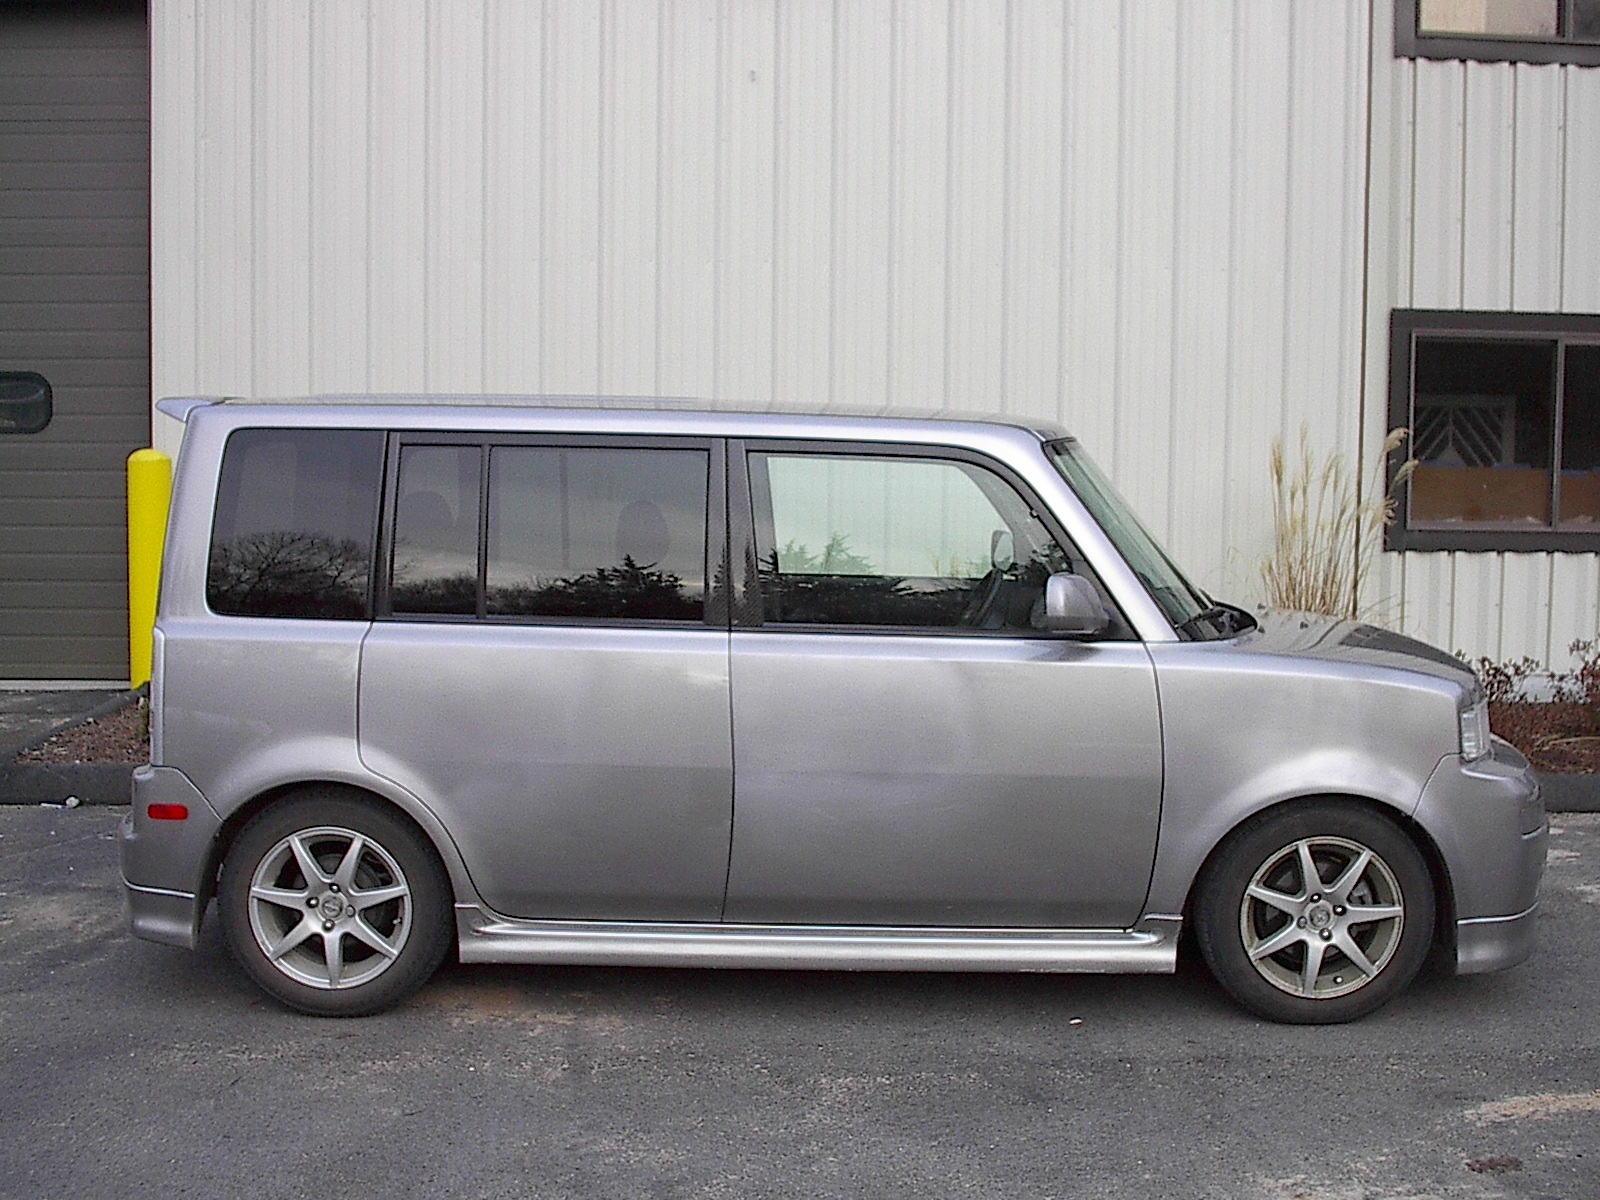 shvdbx 2004 Scion xB 12894970